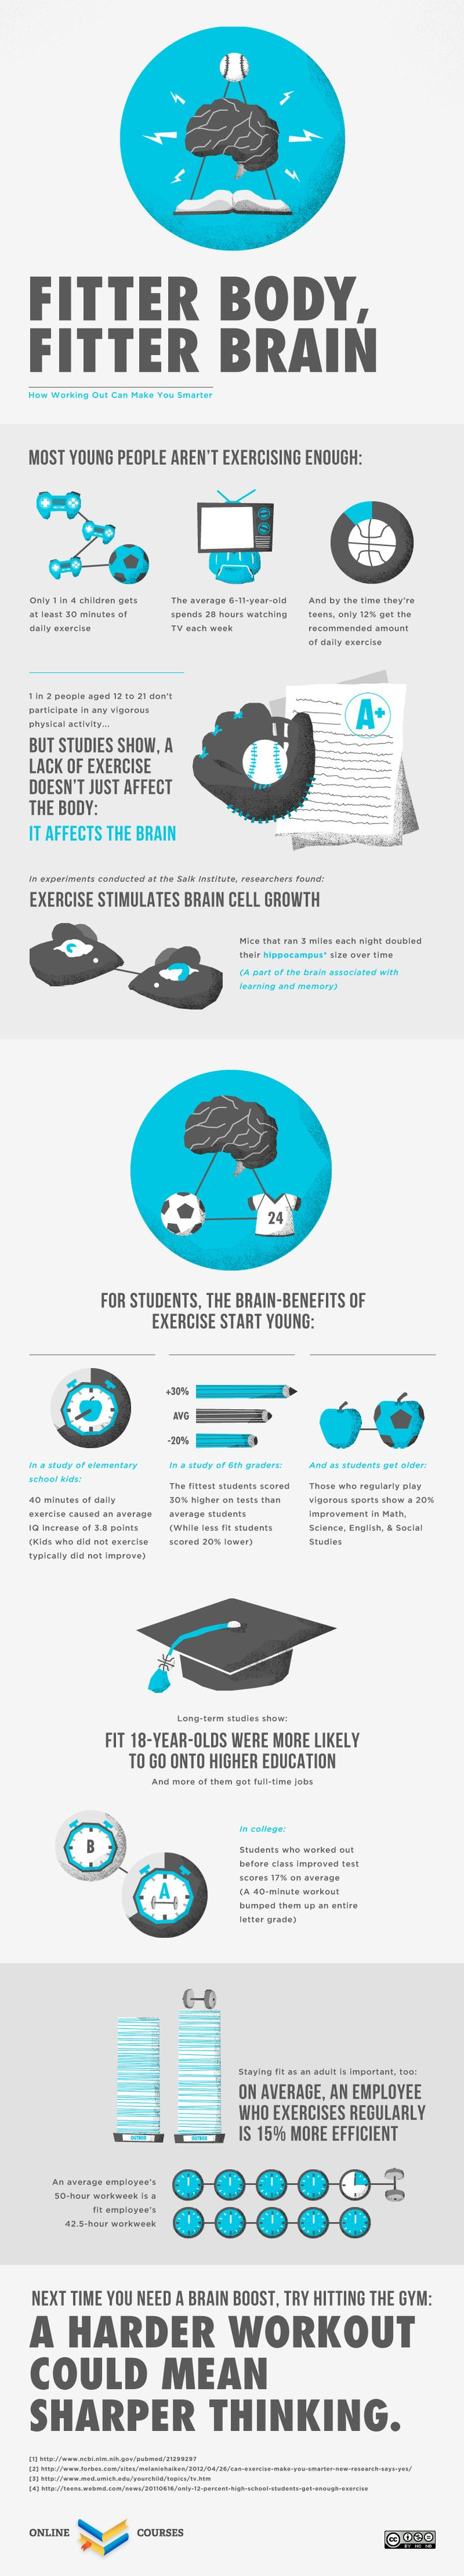 Infographic: How Exercise Can Make You Smarter